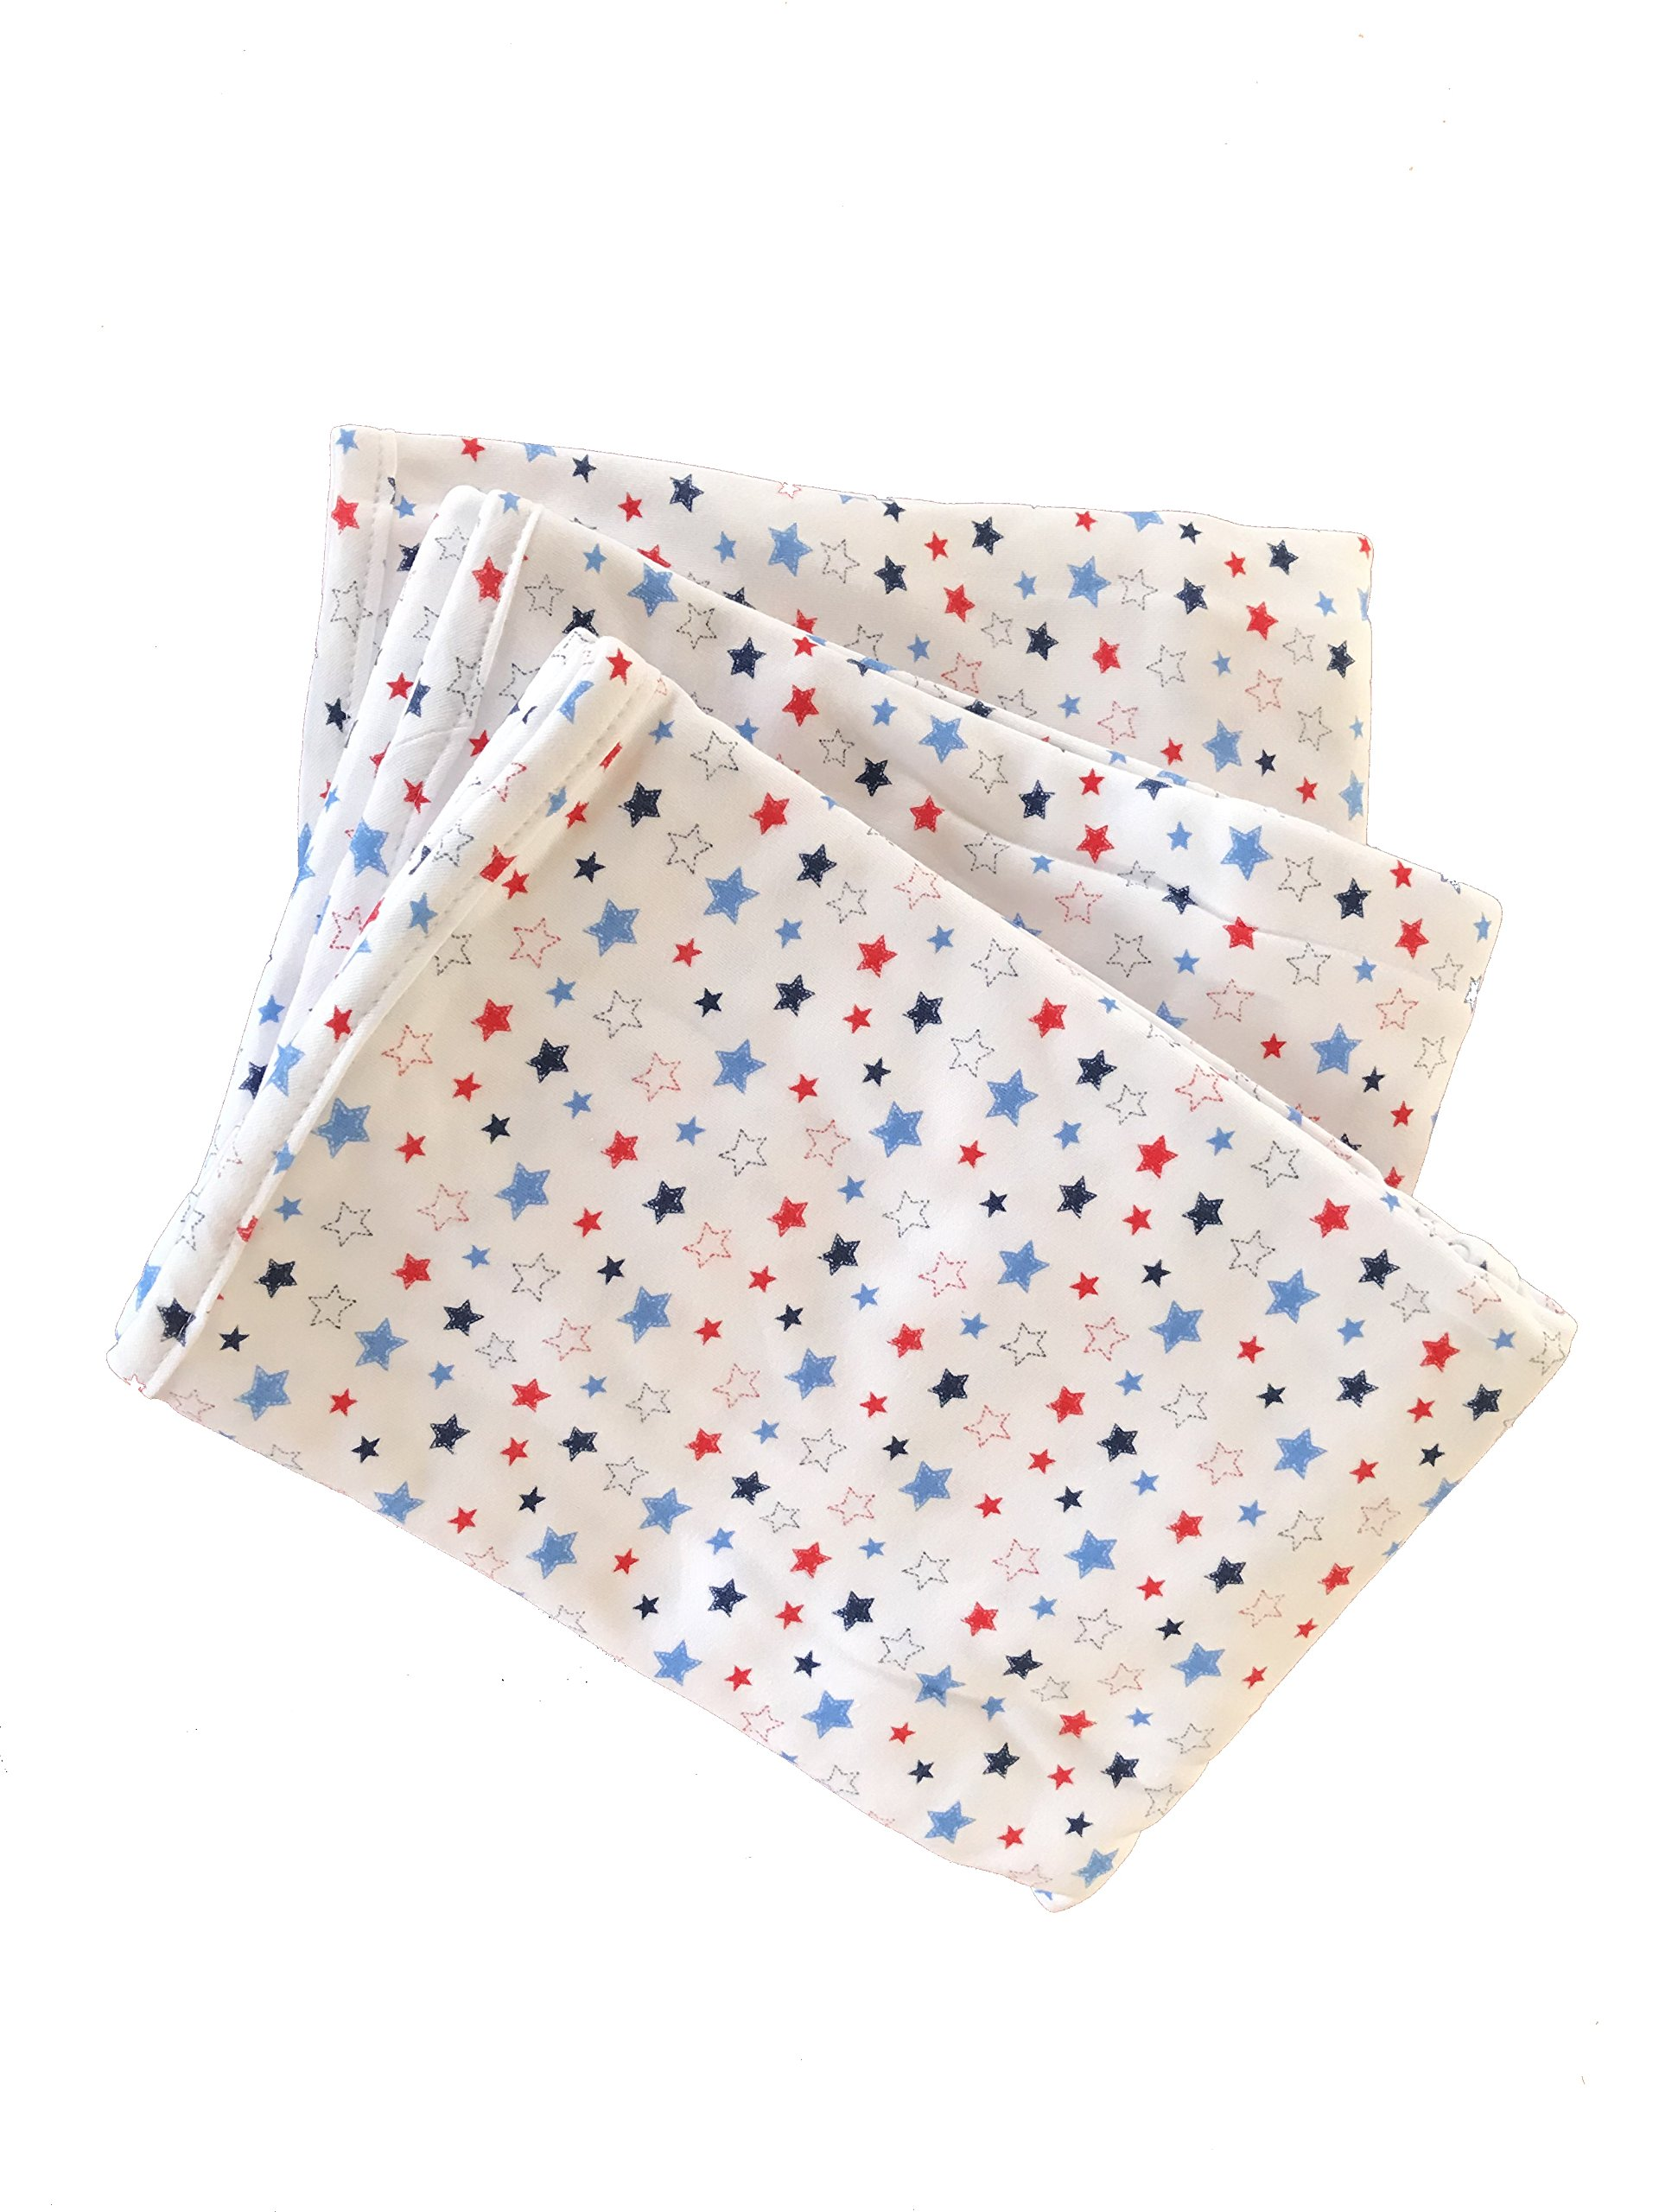 Patriotic Organic Cotton Receiving Blankets 3 Pack by Ecobaby Organics